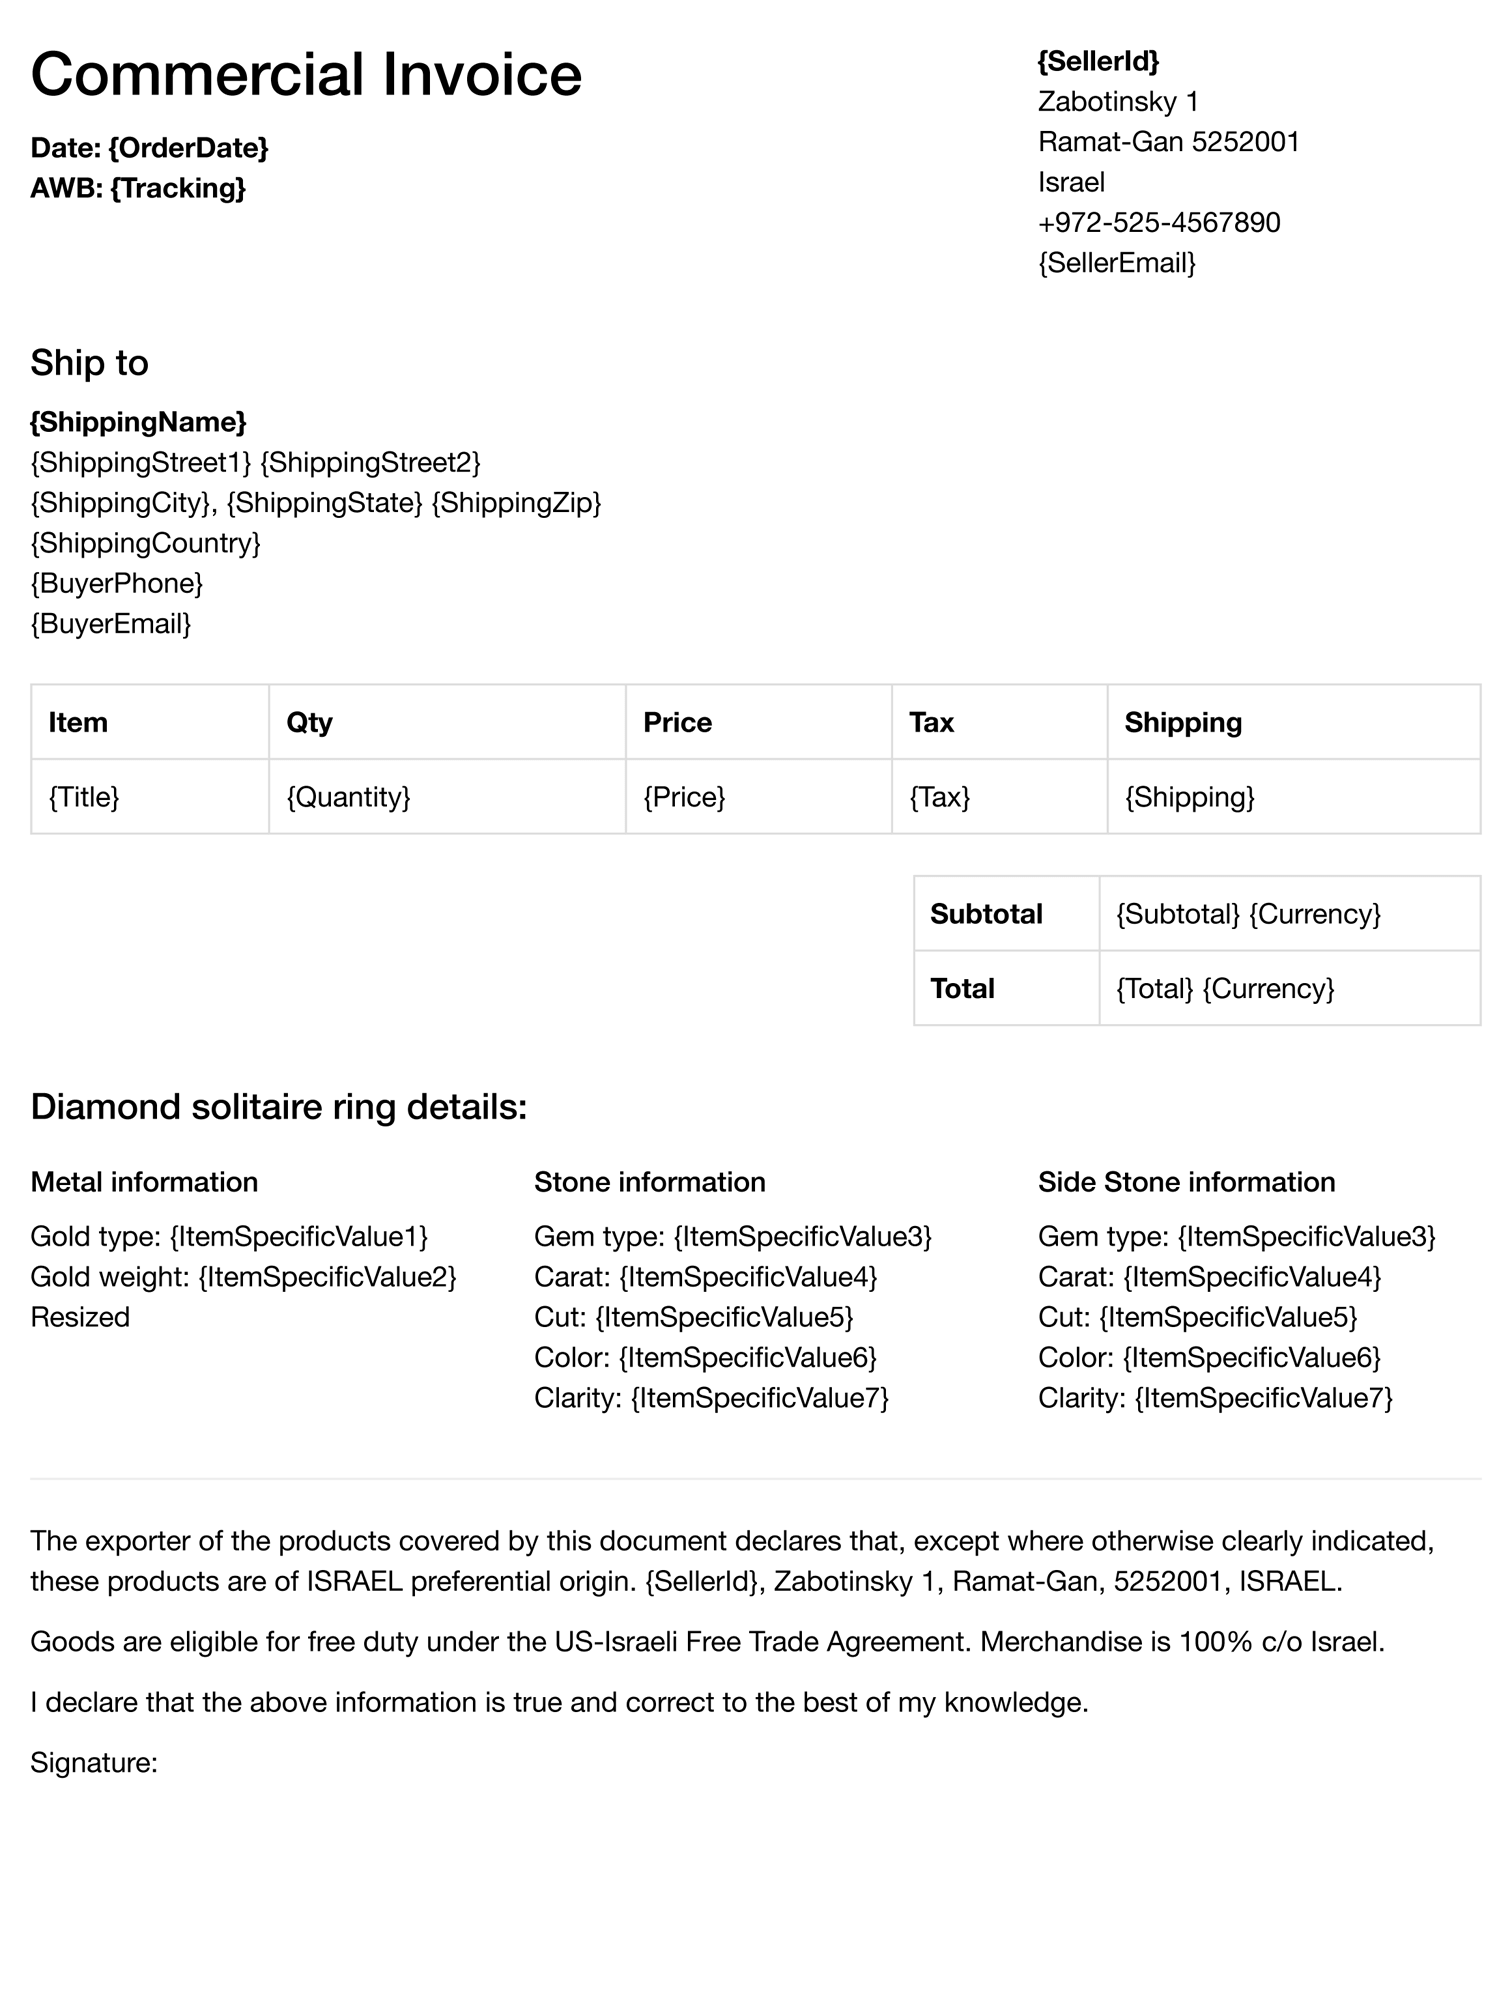 eBay jeweler declaration template